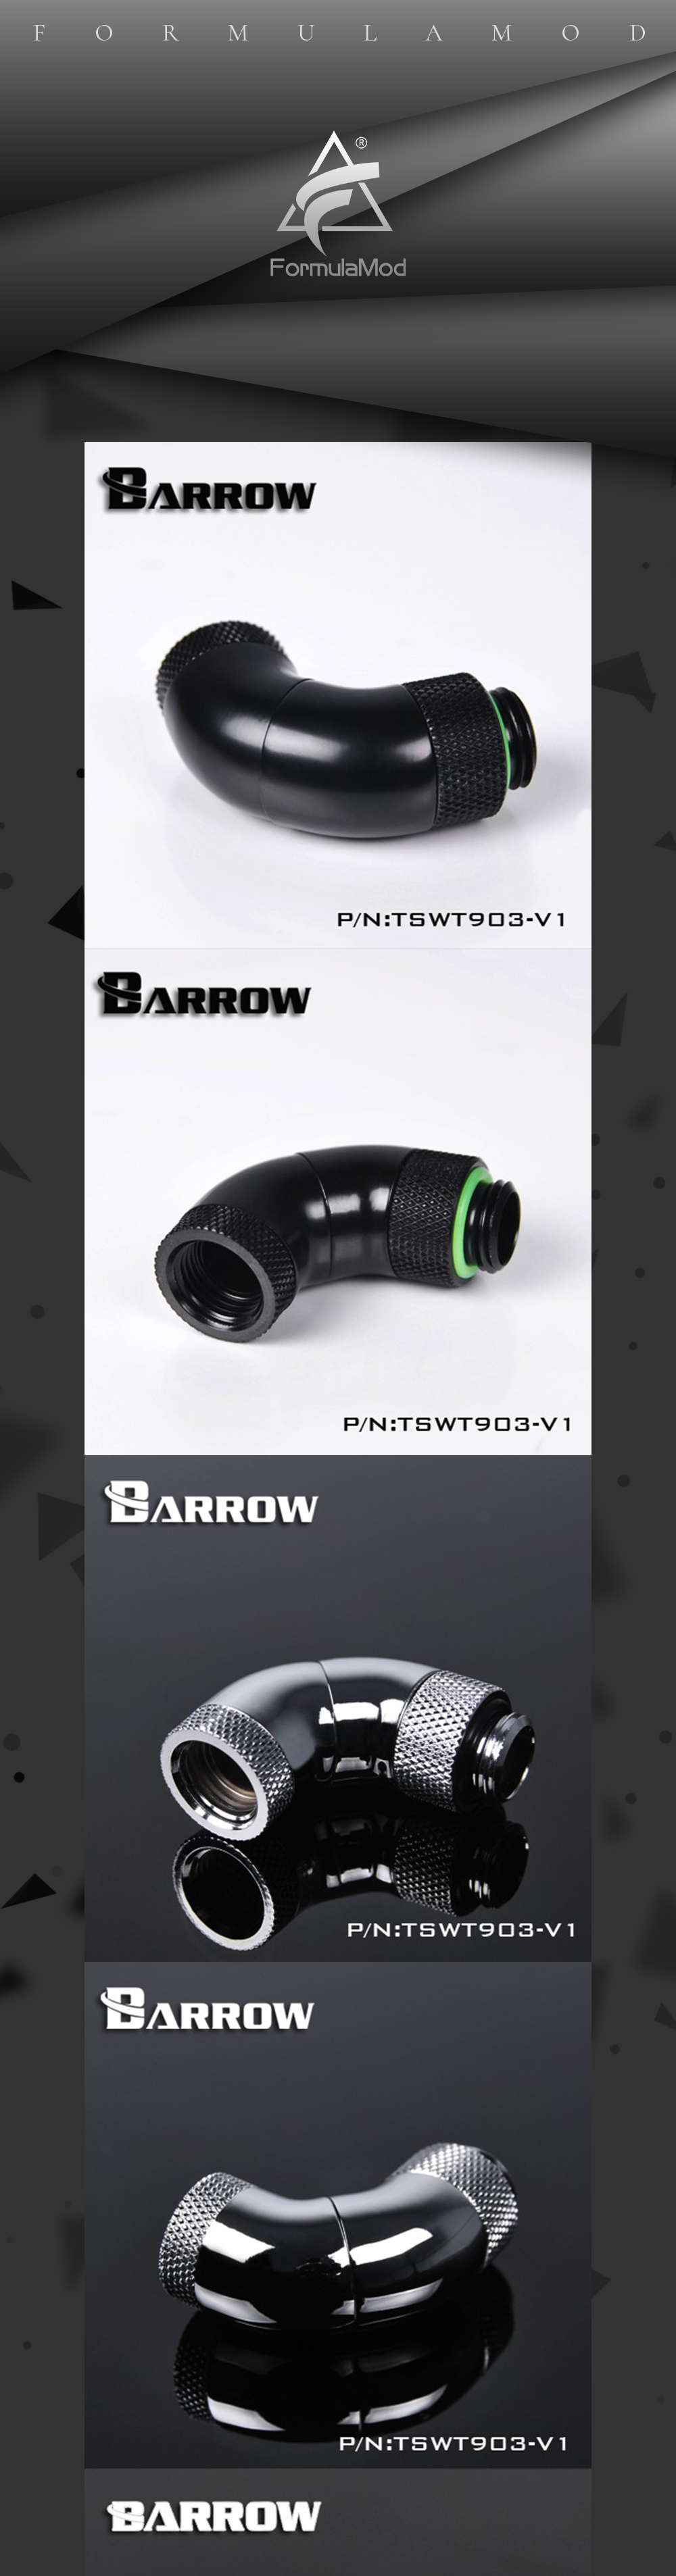 "Barrow G1/4"" White Black Silver Three Rotary 90-Degree 360 degree rotatable IG1/4"" Extender water cooling fittings TSWT903-V1"